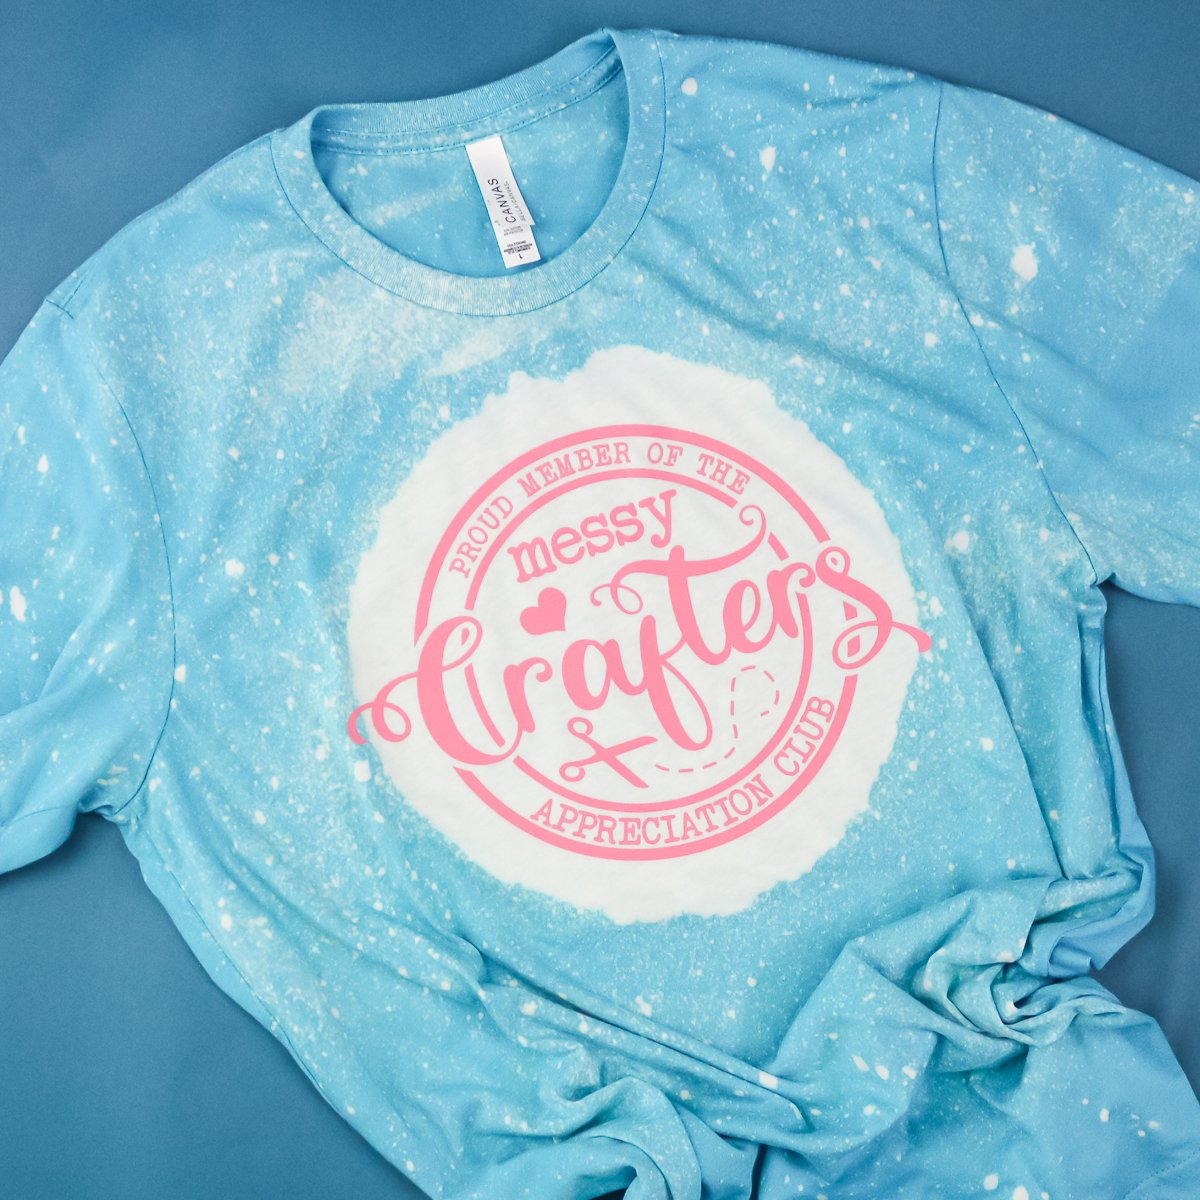 messy crafters club HTV shirt